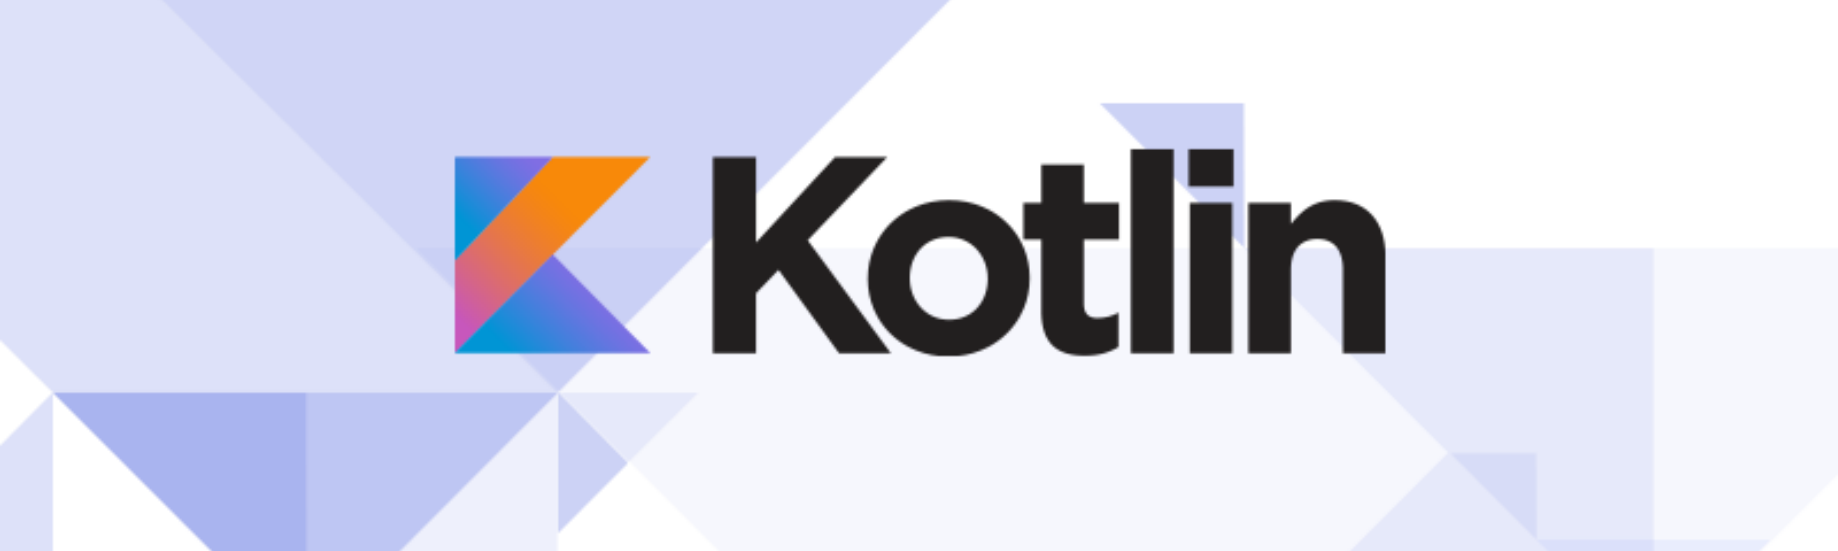 How to enable Kotlin on Netbeans - Wendreo L  Fernandes - Medium